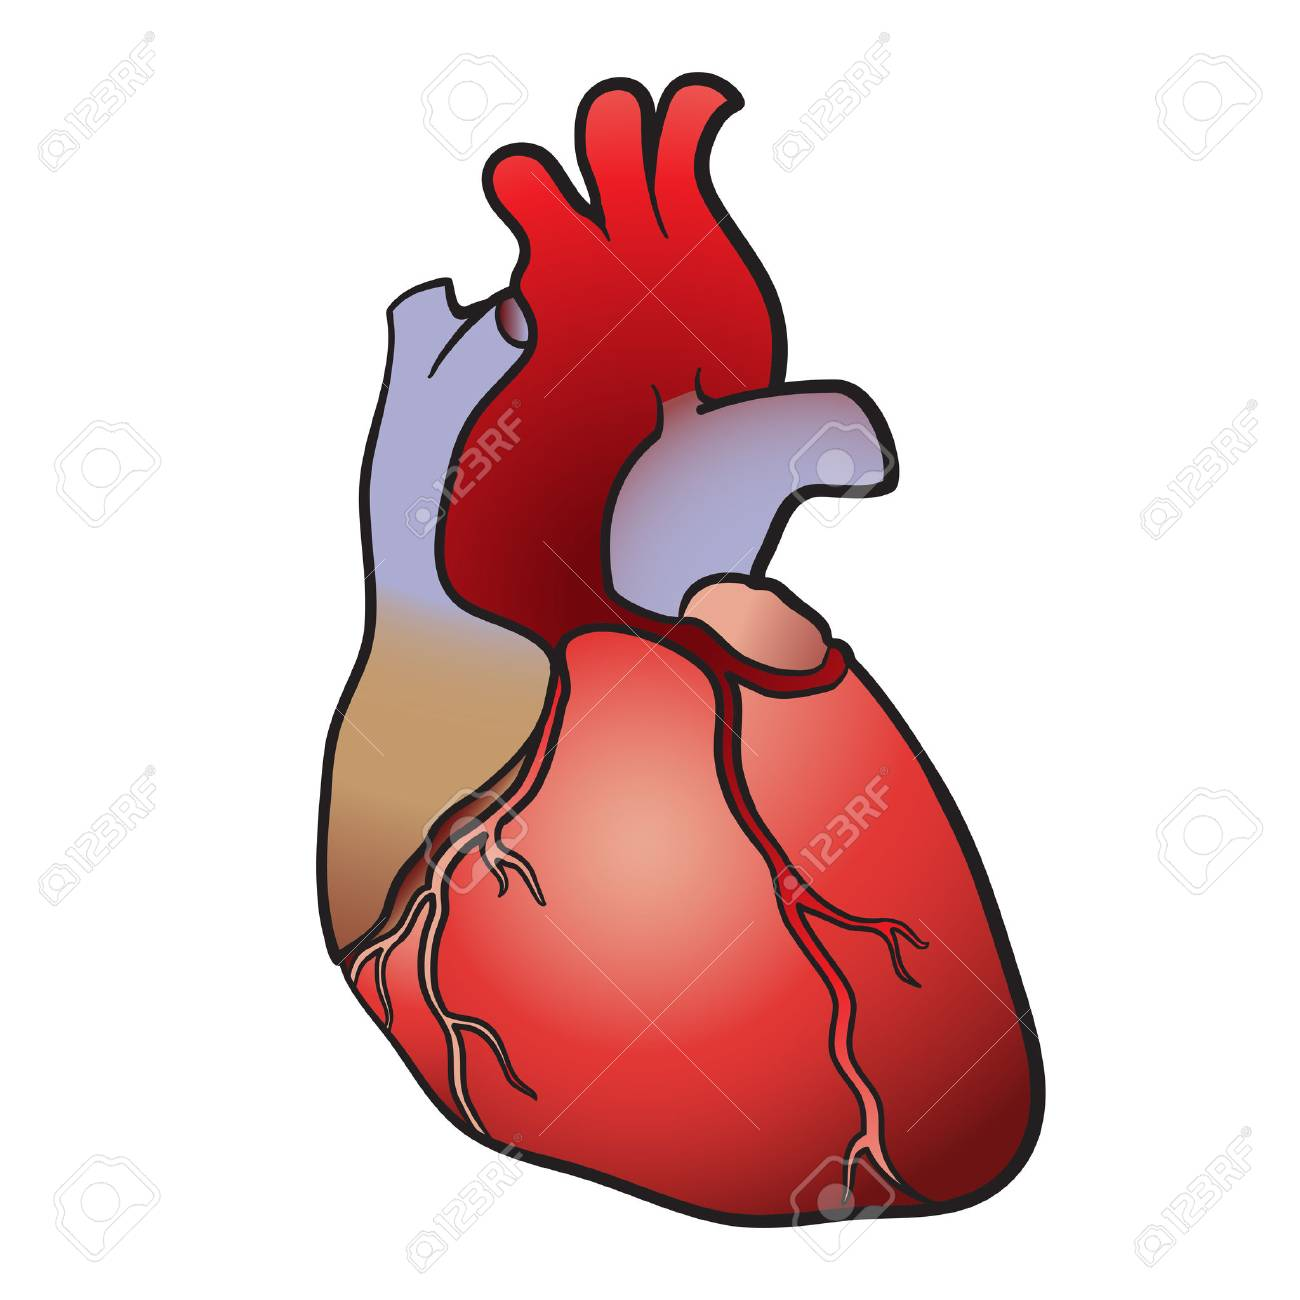 Illustration of the human heart Stock Vector - 23292127